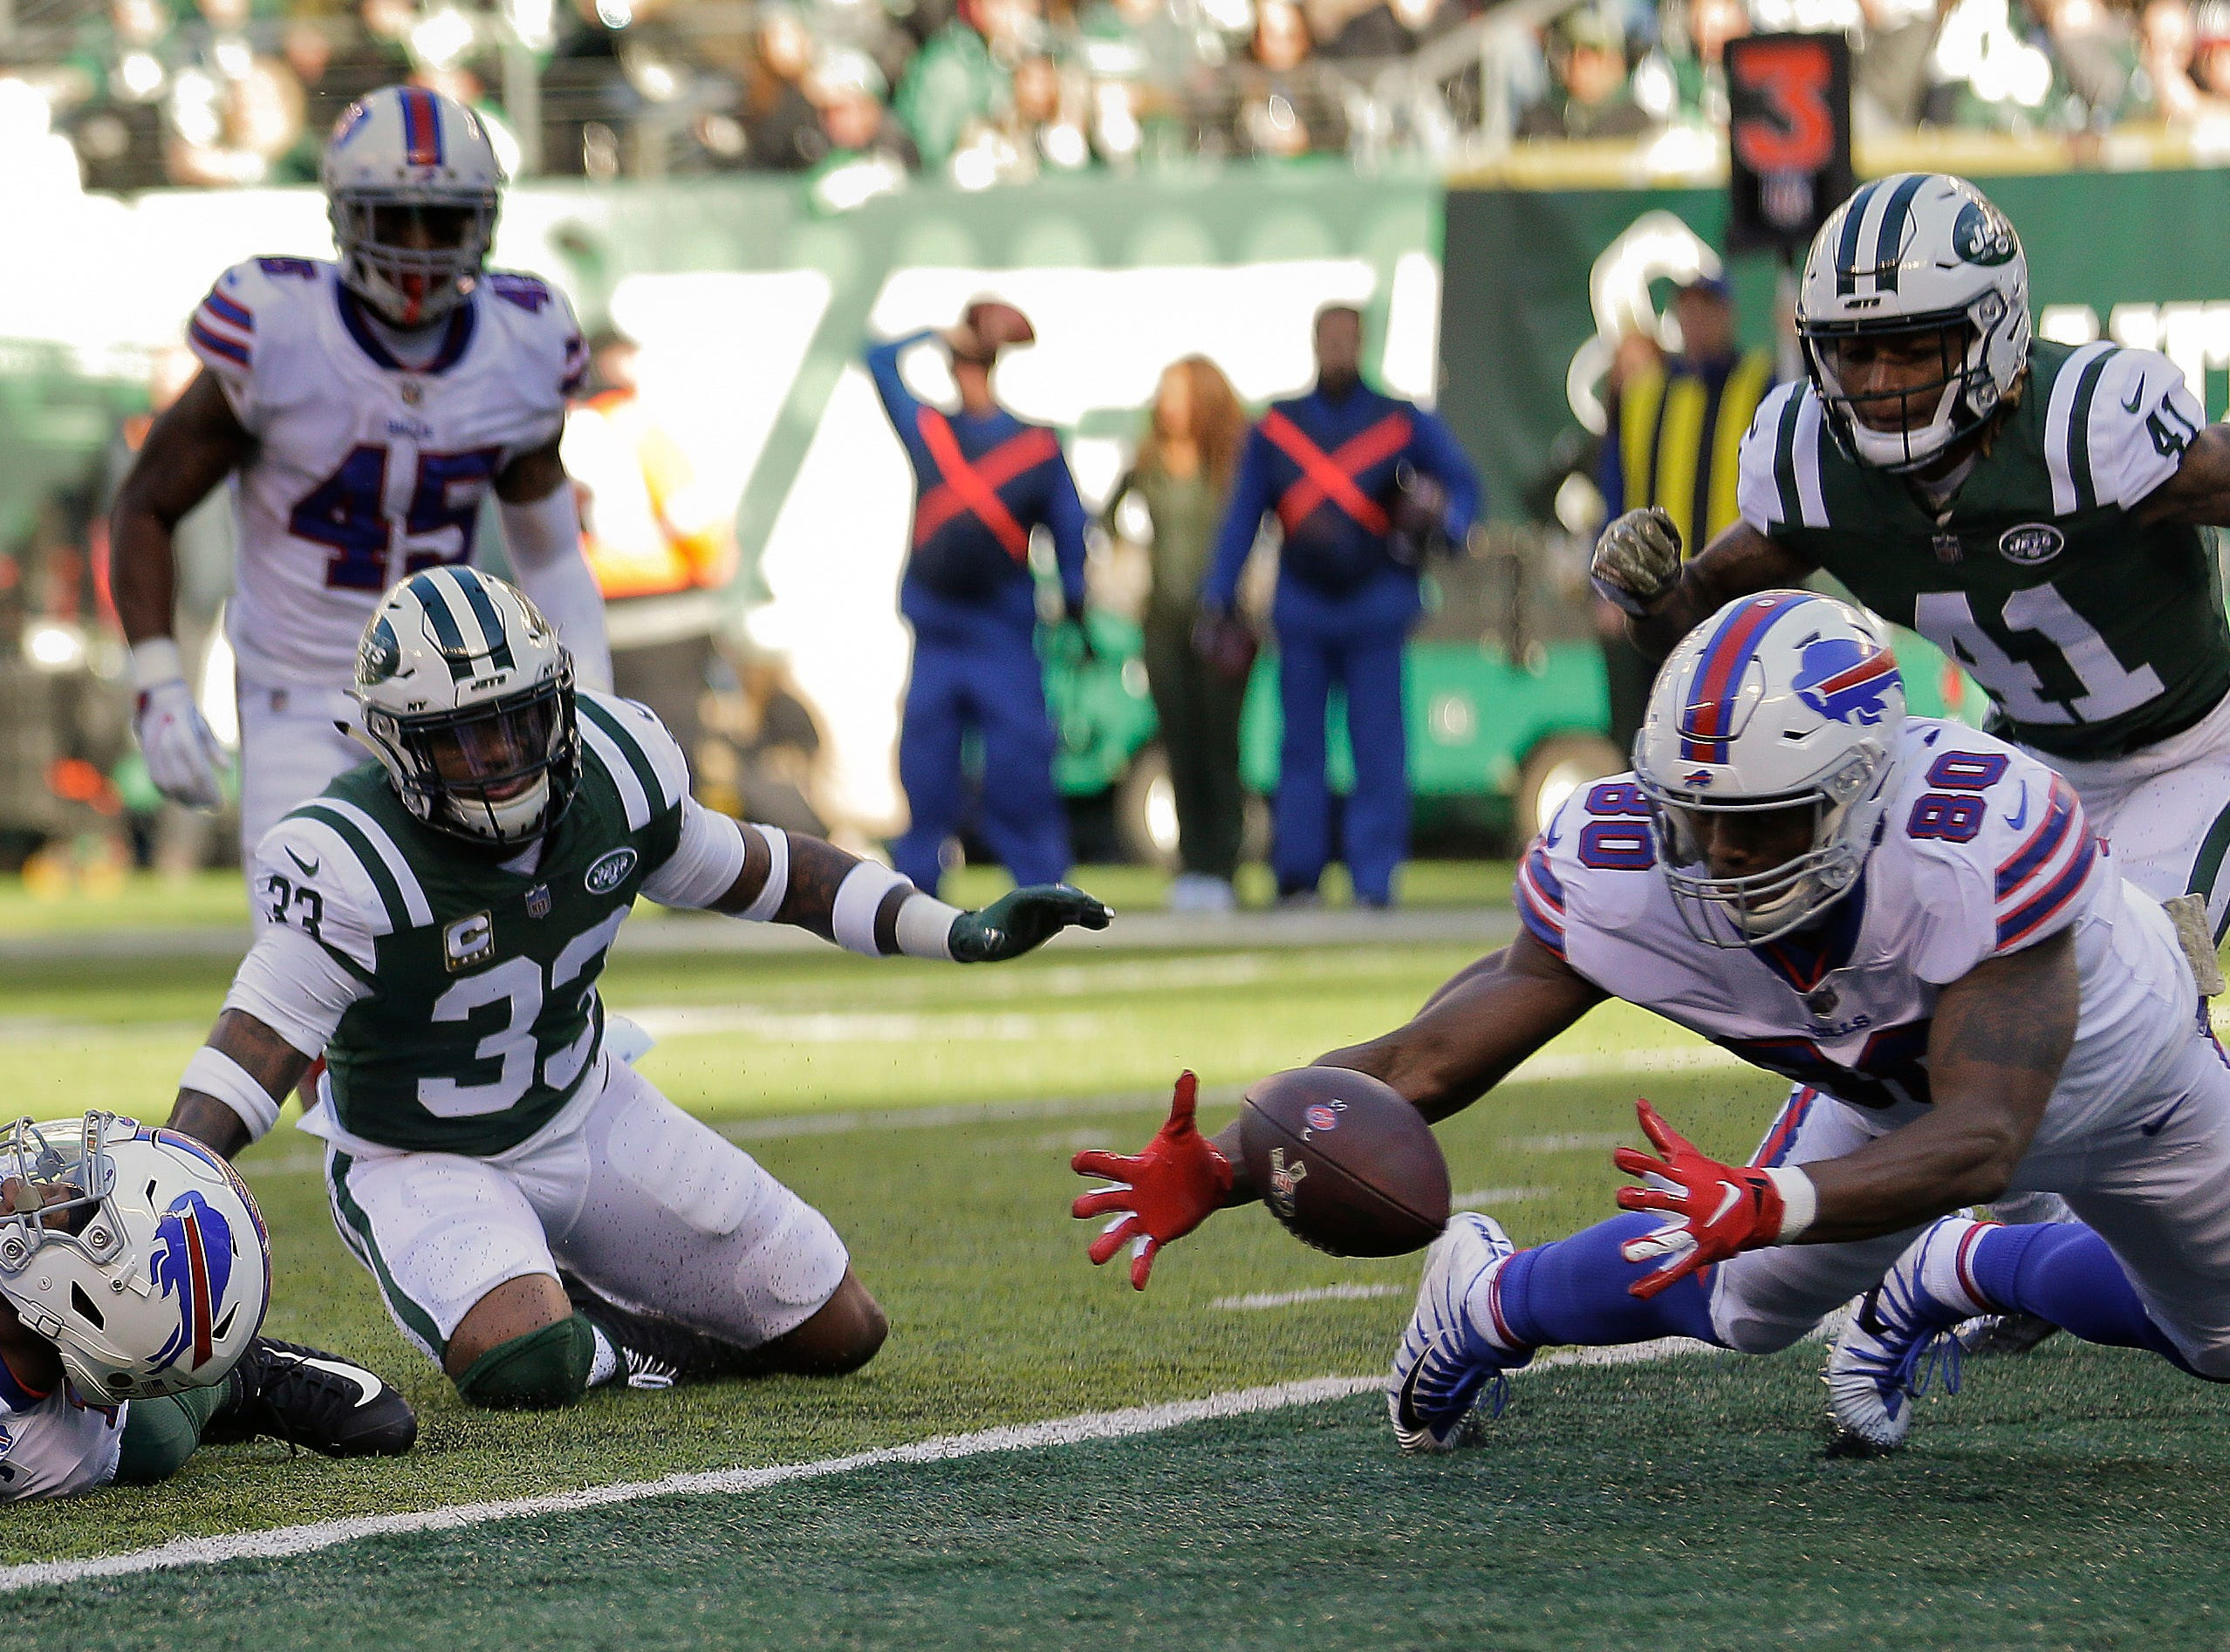 Buffalo Bills tight end Jason Croom (80) recovers a fumble by wide receiver Zay Jones , left, for a touchdown against the New York Jets during the first quarter of an NFL football game, Sunday, Nov. 11, 2018, in East Rutherford, N.J. (AP Photo/Seth Wenig)